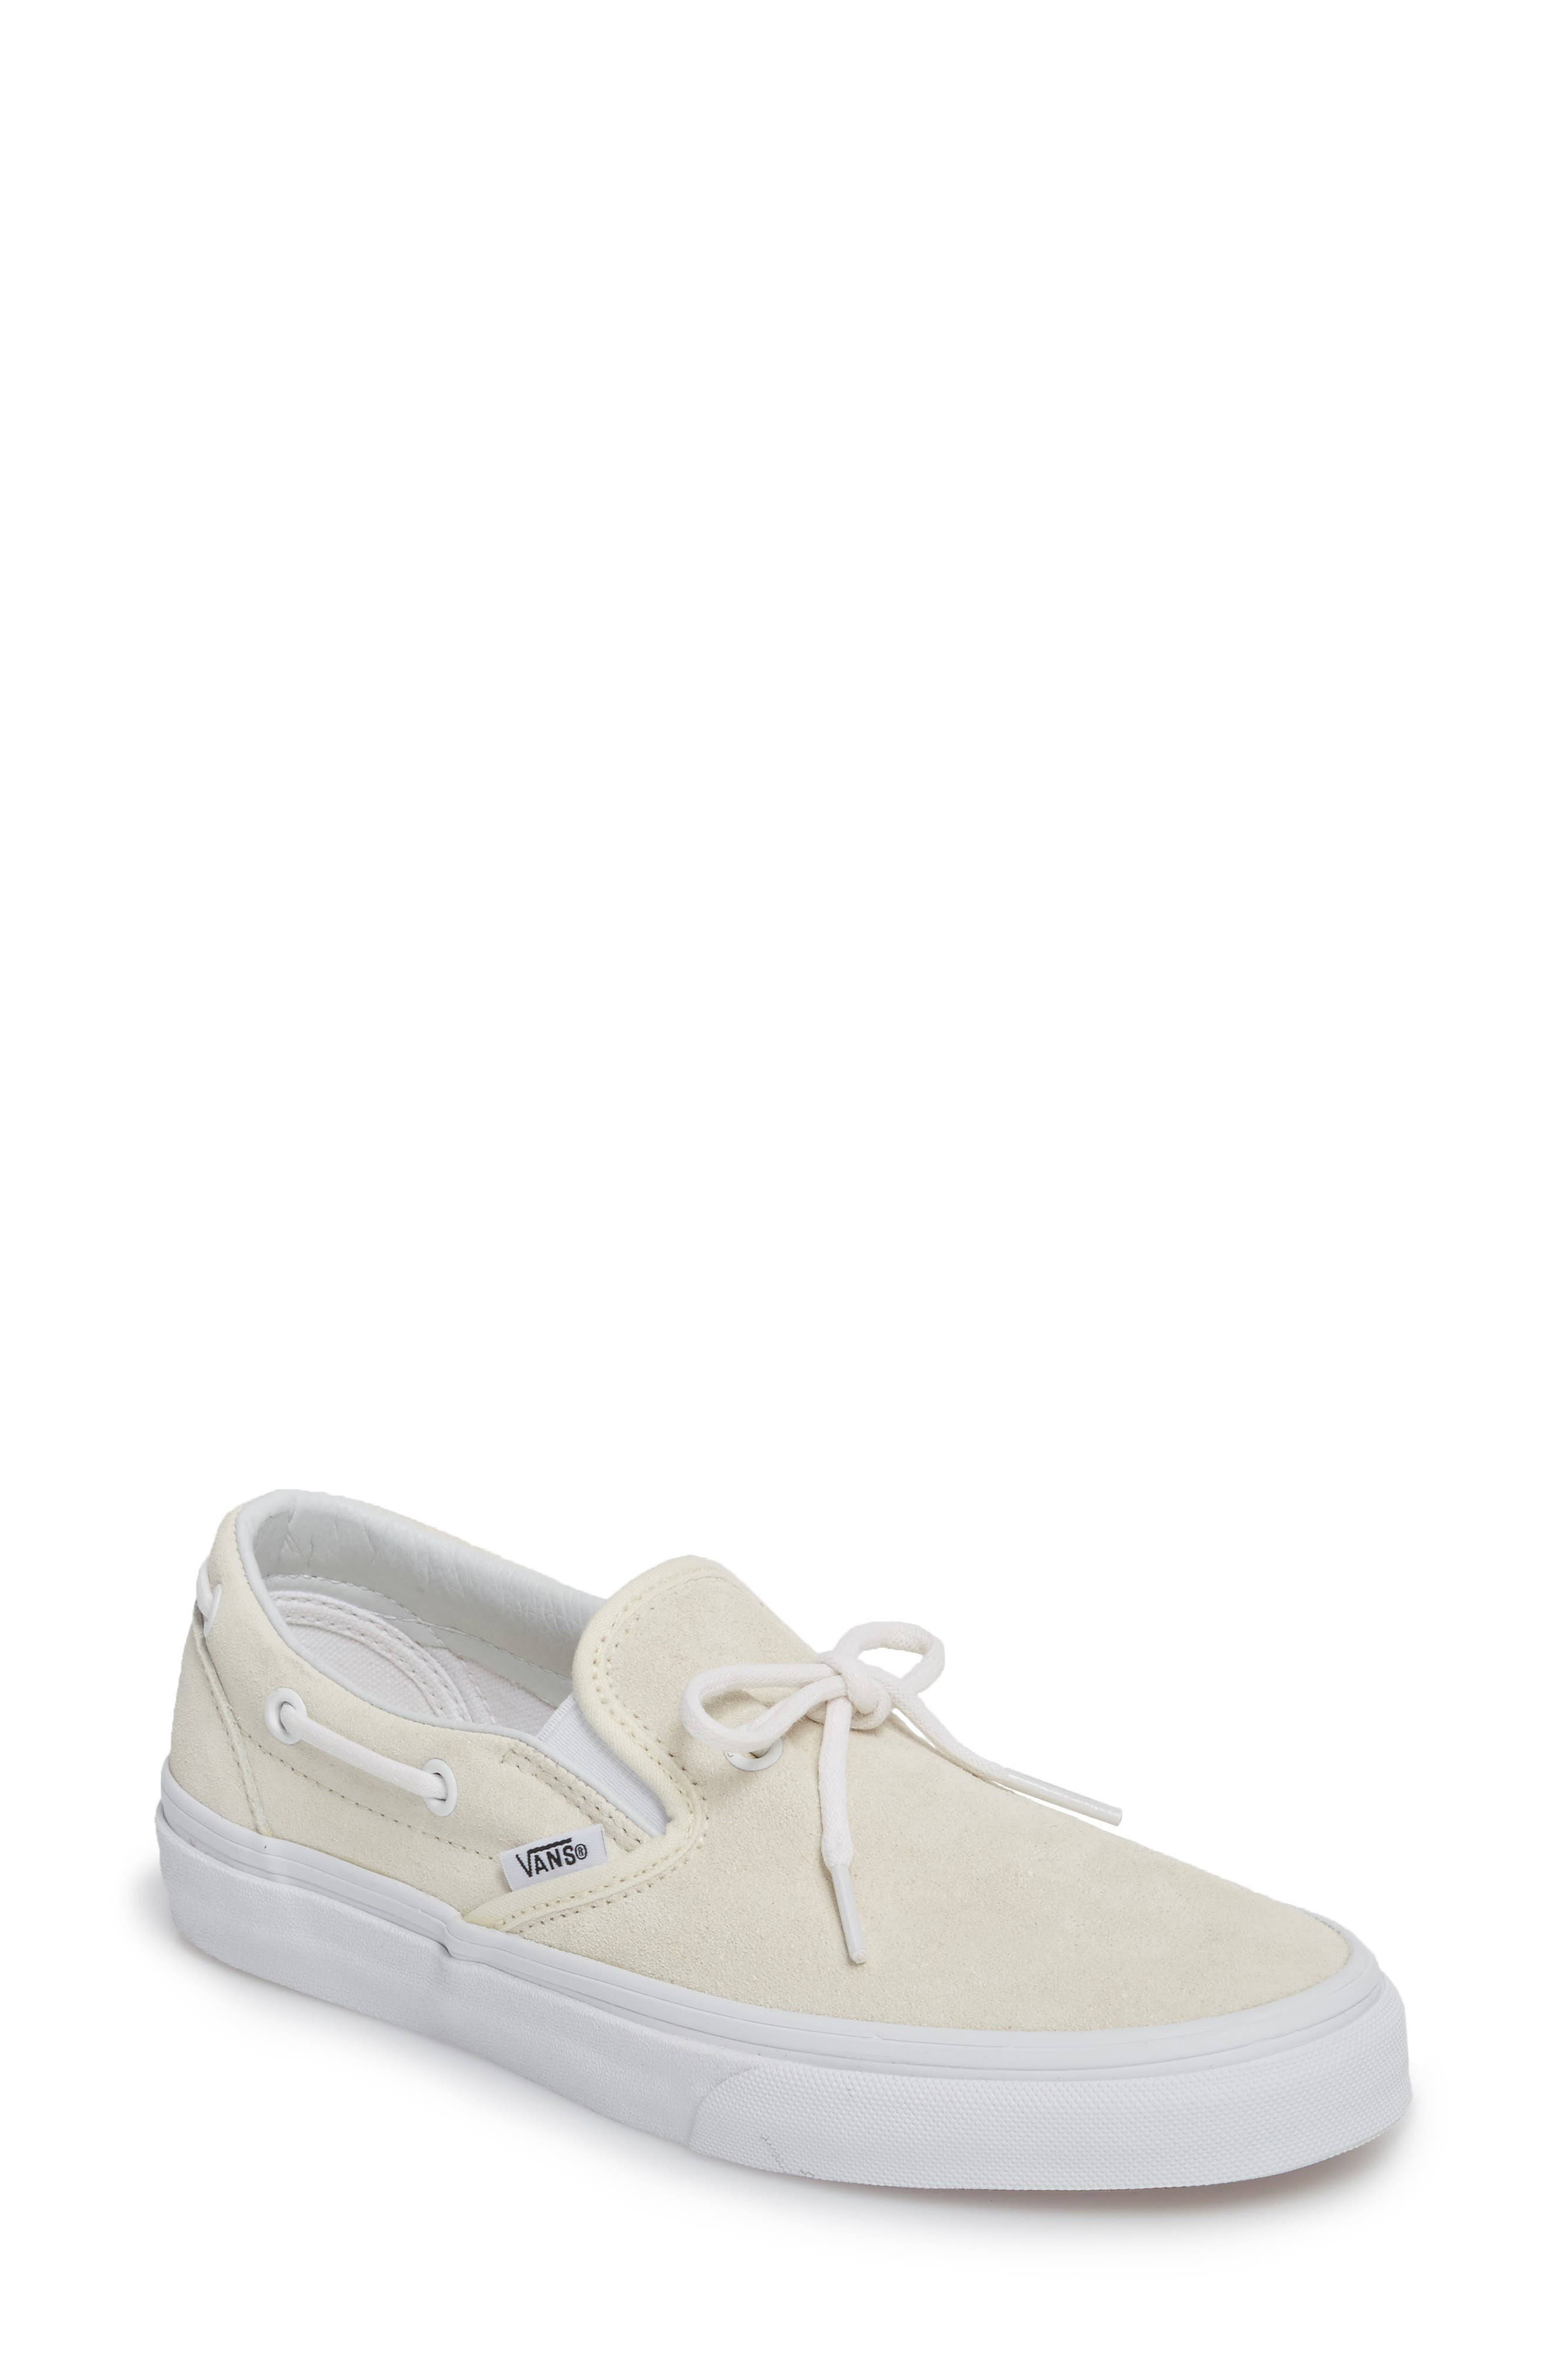 c6ff1406e7e5 Vans Ua Lacey 72 Slip-On Boat Sneaker In White Leather